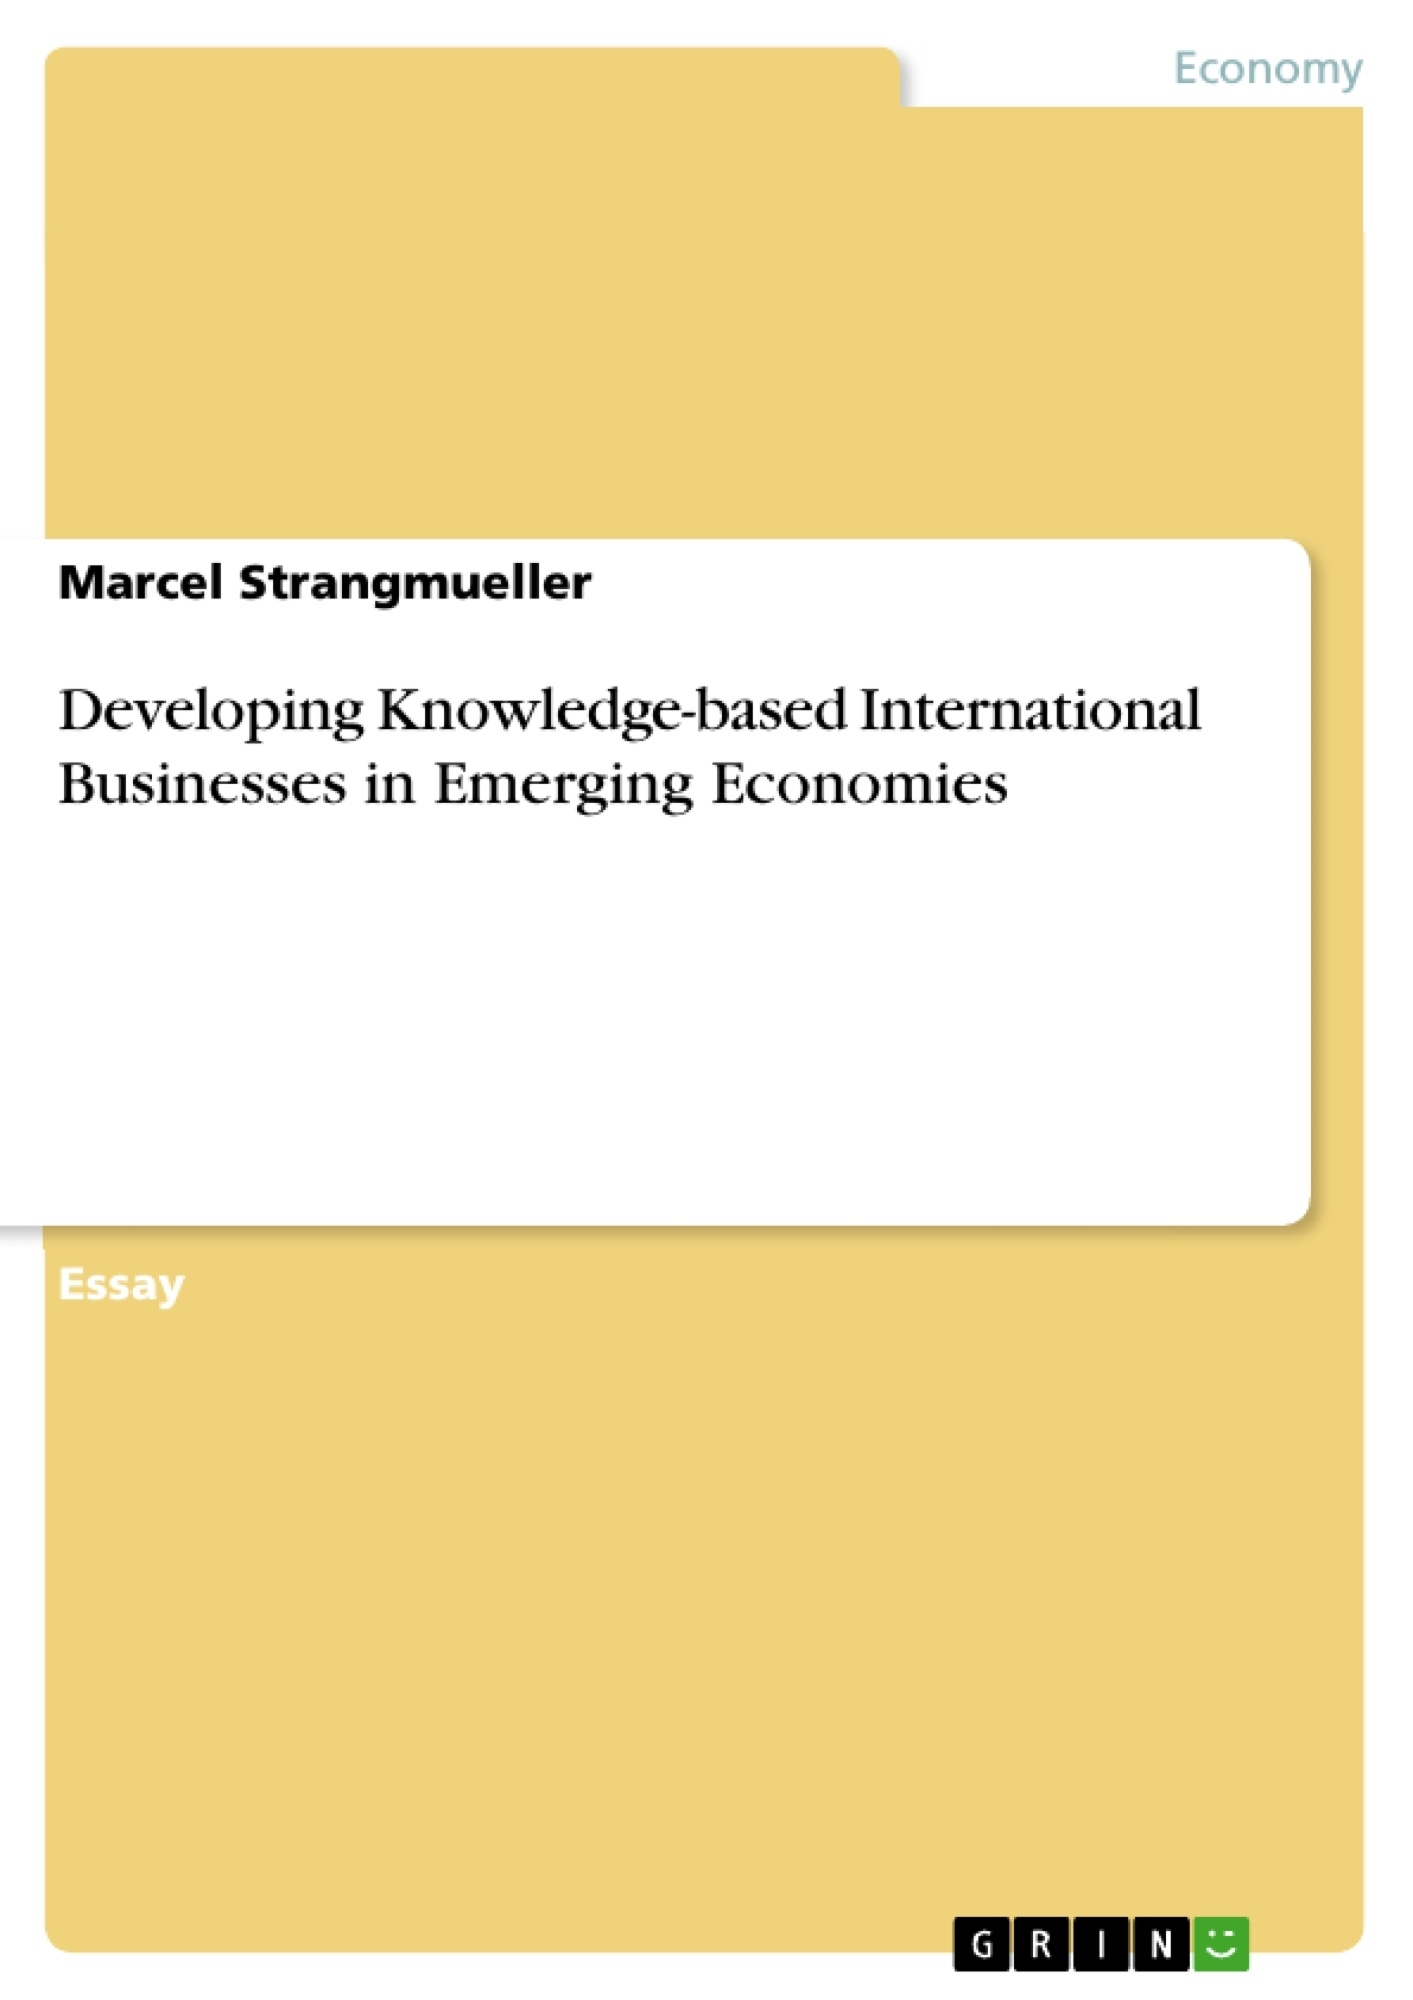 Title: Developing Knowledge-based International Businesses in Emerging Economies